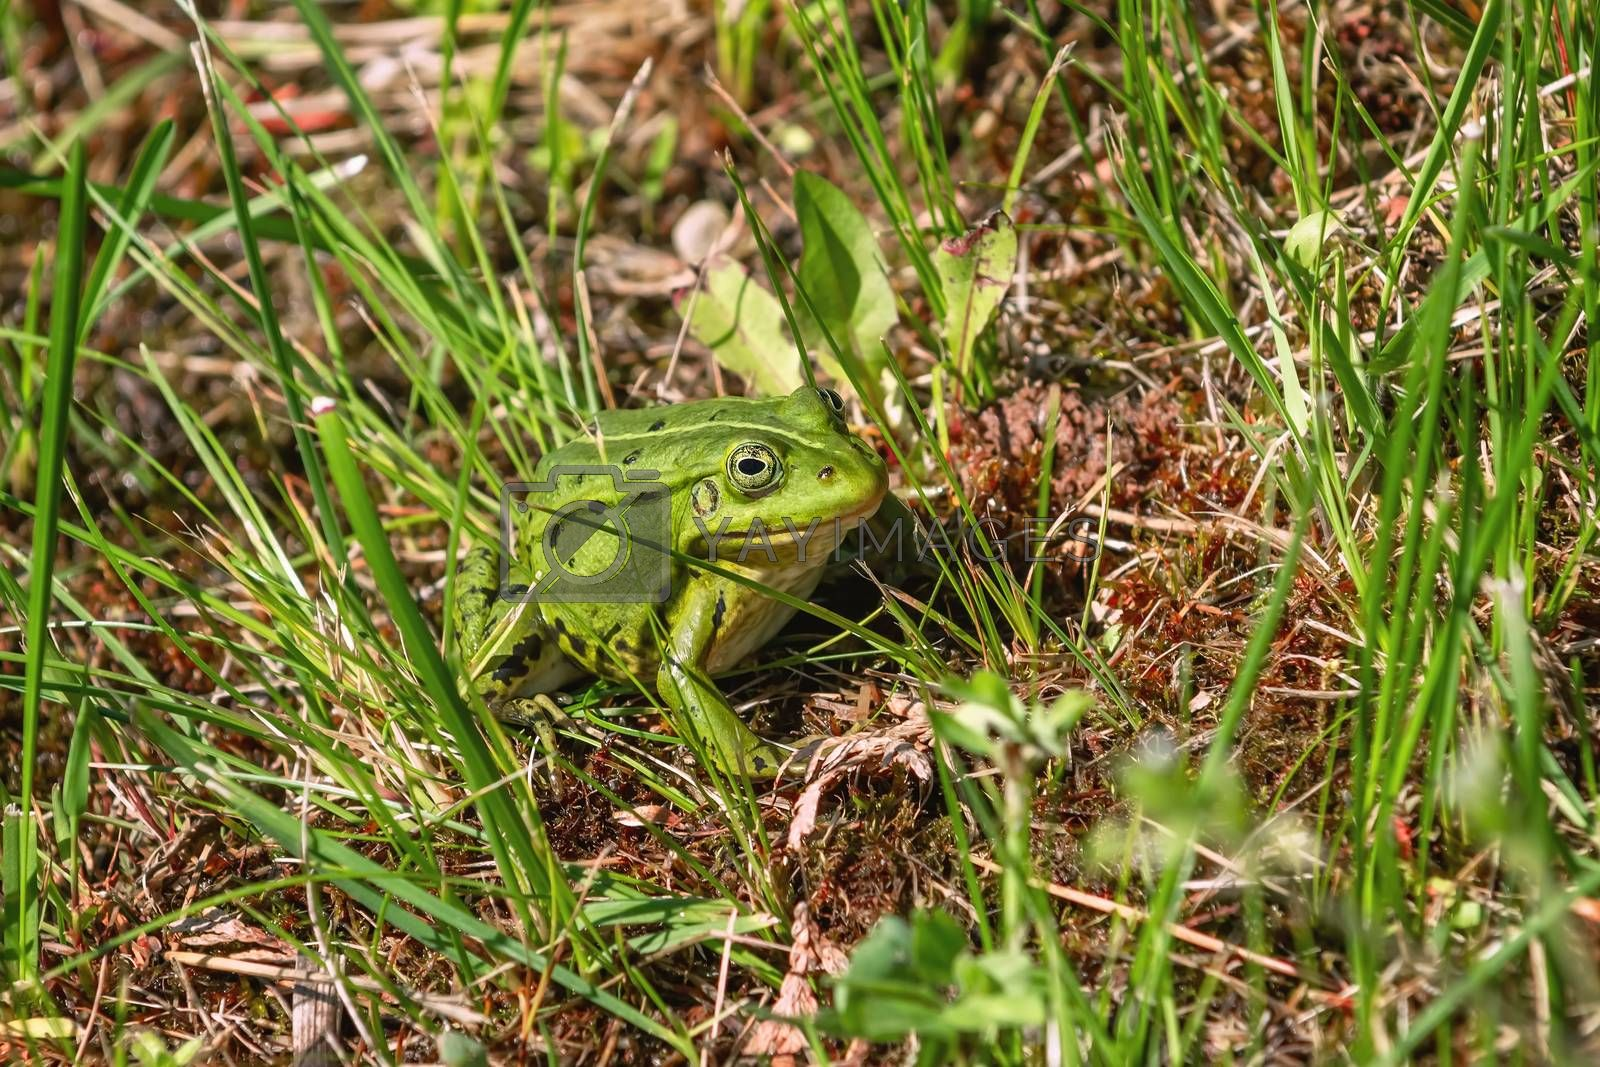 Green frog in the grass near the pond